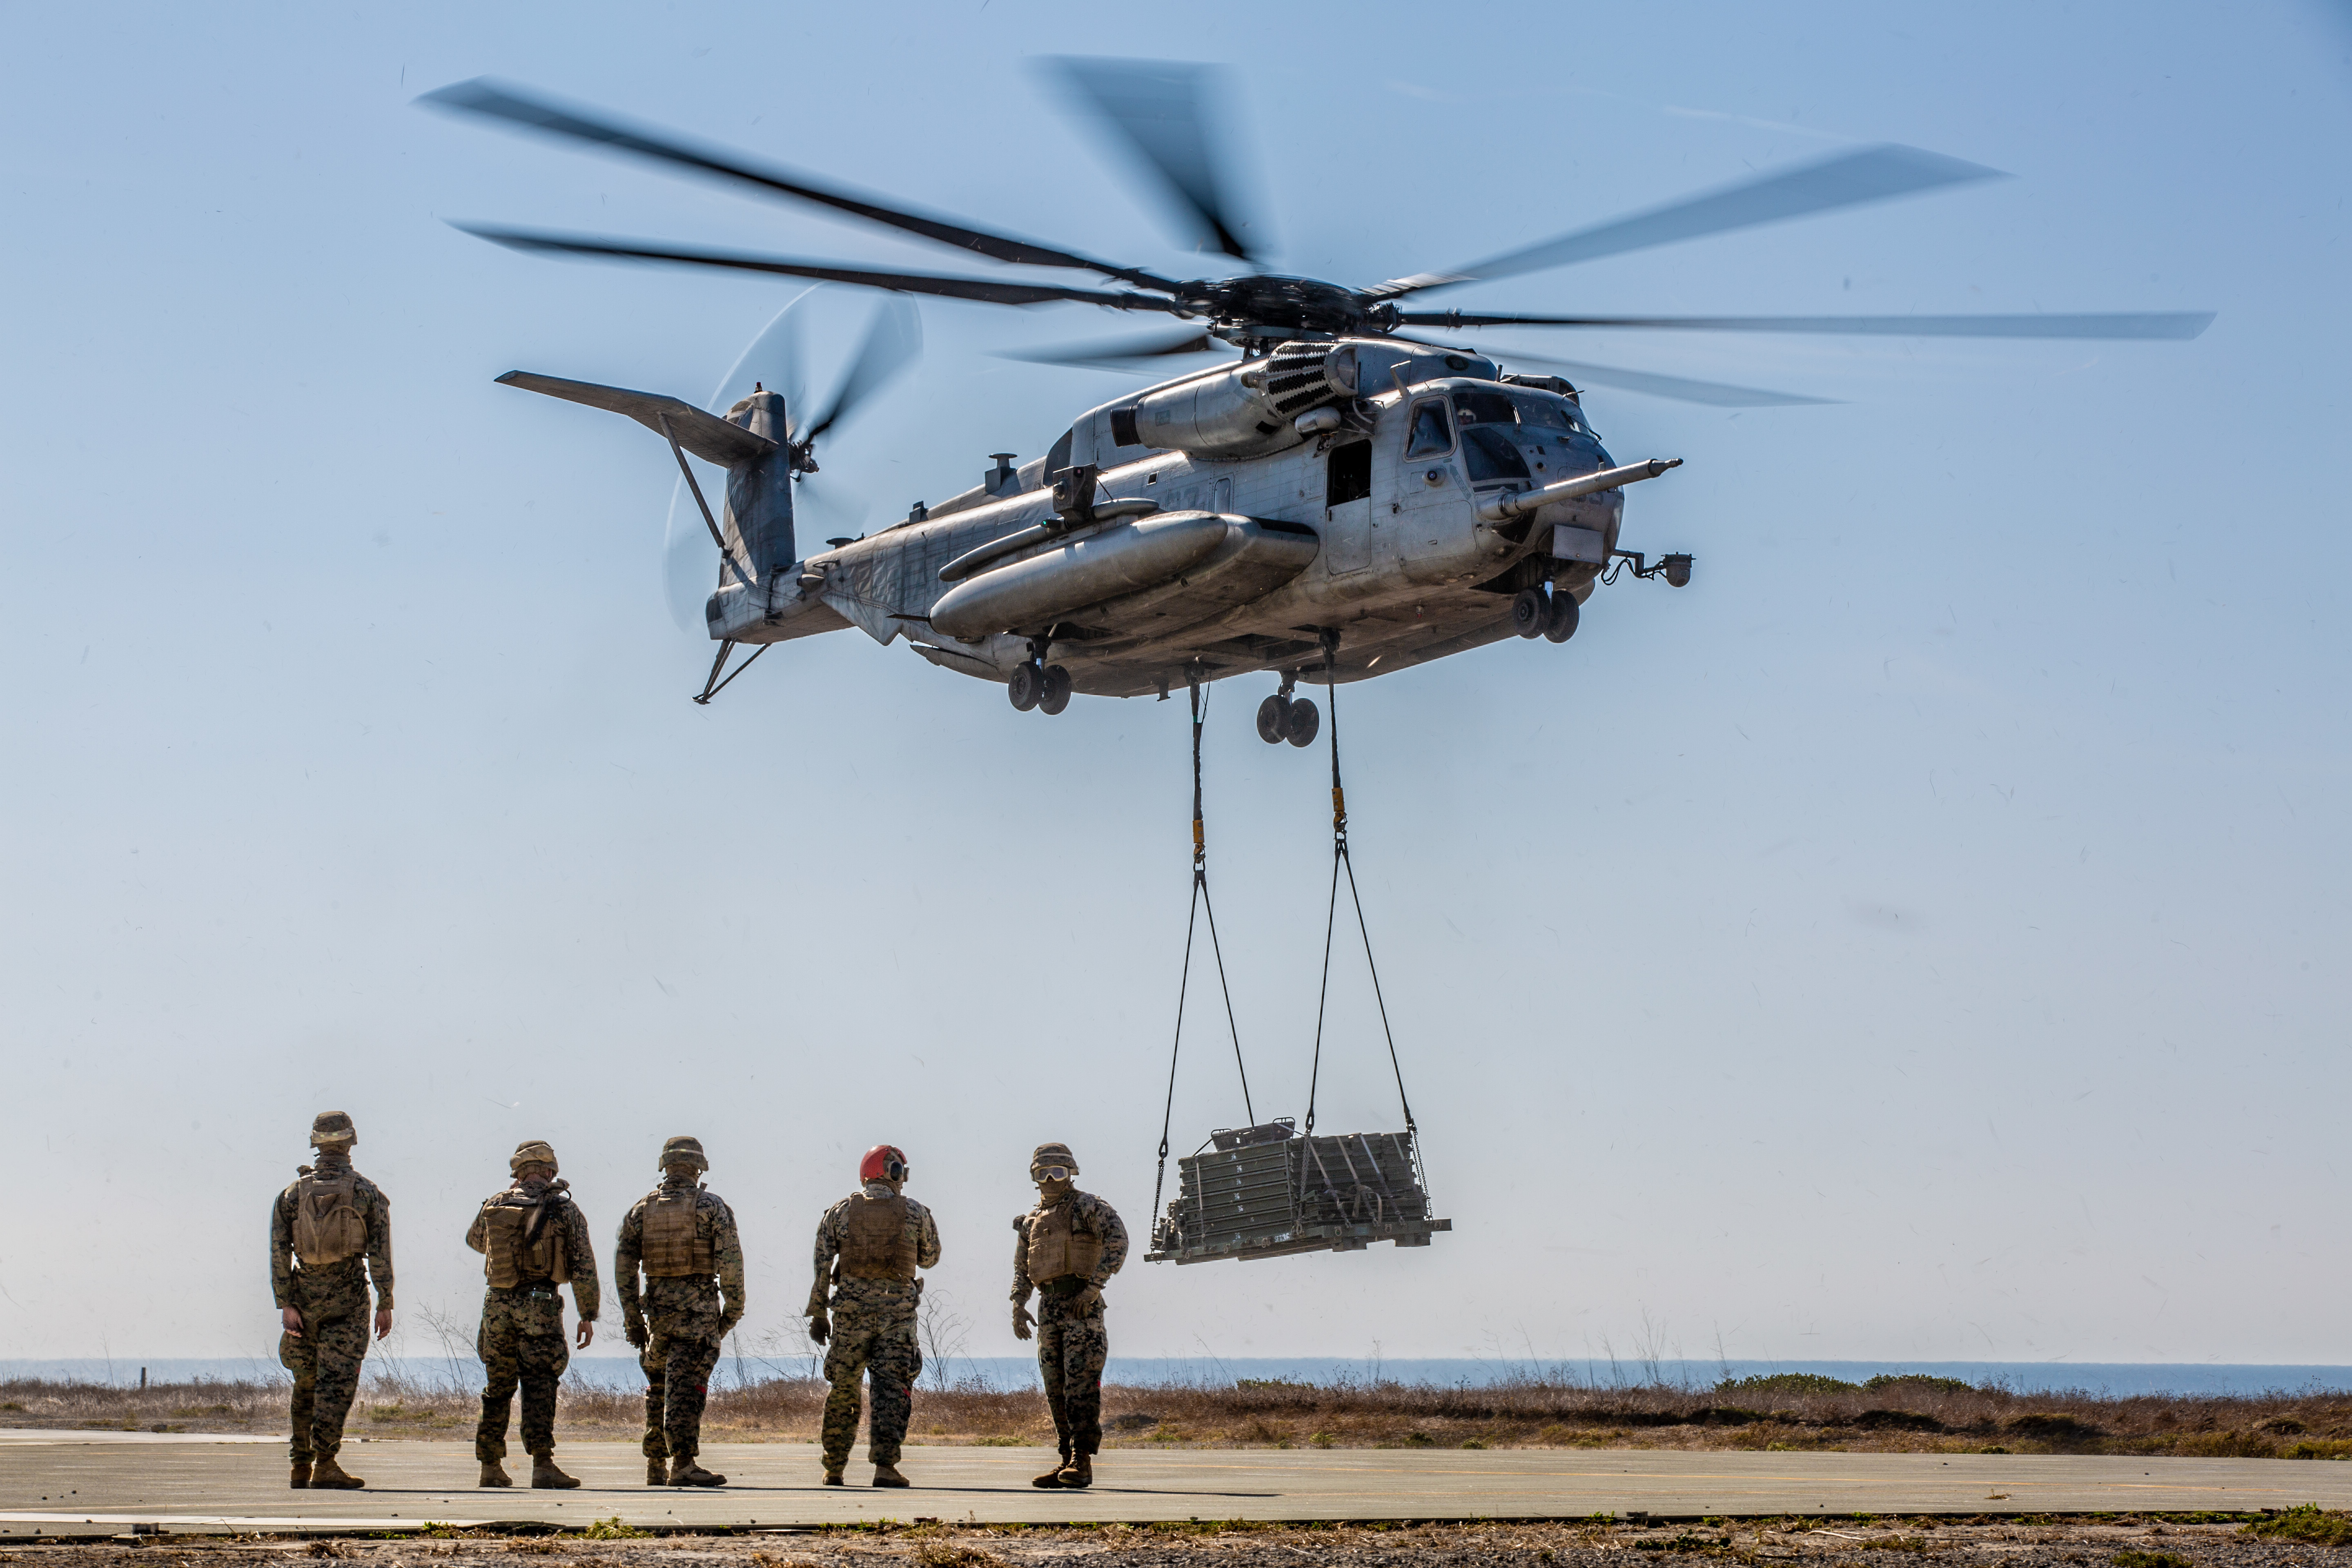 Marines with Landing Support Company, 1st Transportation Battalion, 1st Marine Logistics Group, prepare to detach pallets from a helicopter during Exercise Green Dagger at Camp Pendleton, California, on Nov. 14, 2019. Activities such as this exercise could have been disrupted if a partial government shutdown went into effect this week. (Lance Cpl. Aldo Sessarego/Marines)